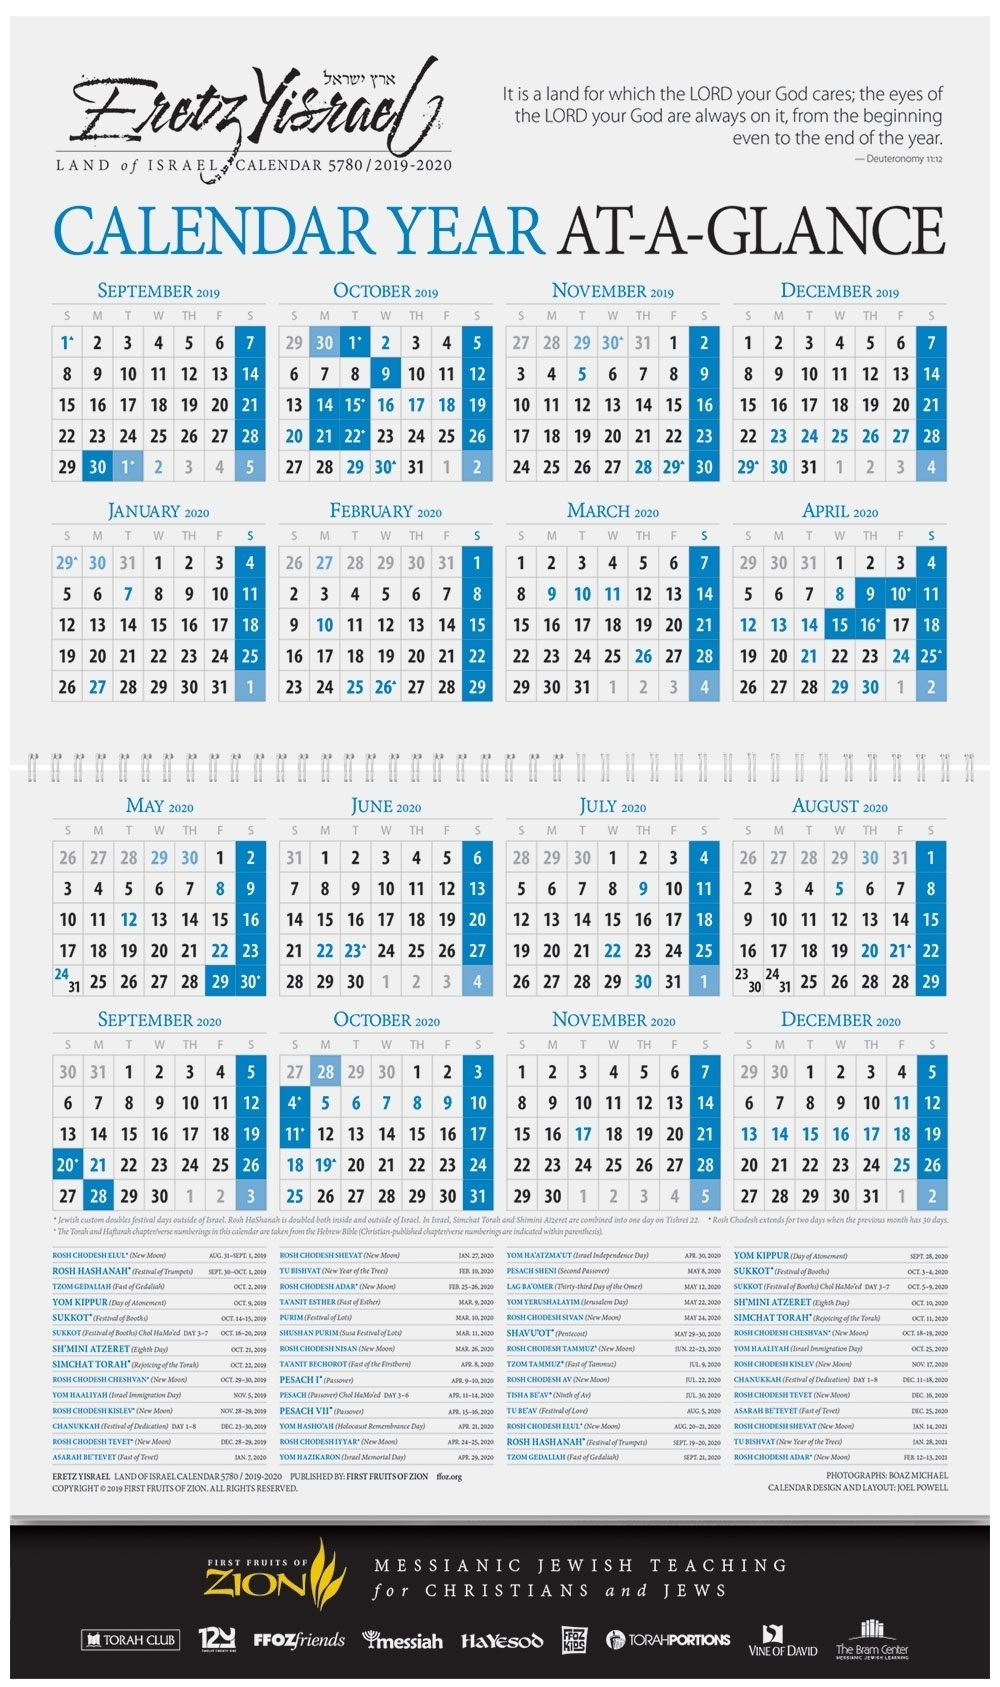 Weekly Torah Parsha Calendar For 2019/2020 - Calendar inside Wanting To Print 2019 And 2020 Weekly Torah Portions